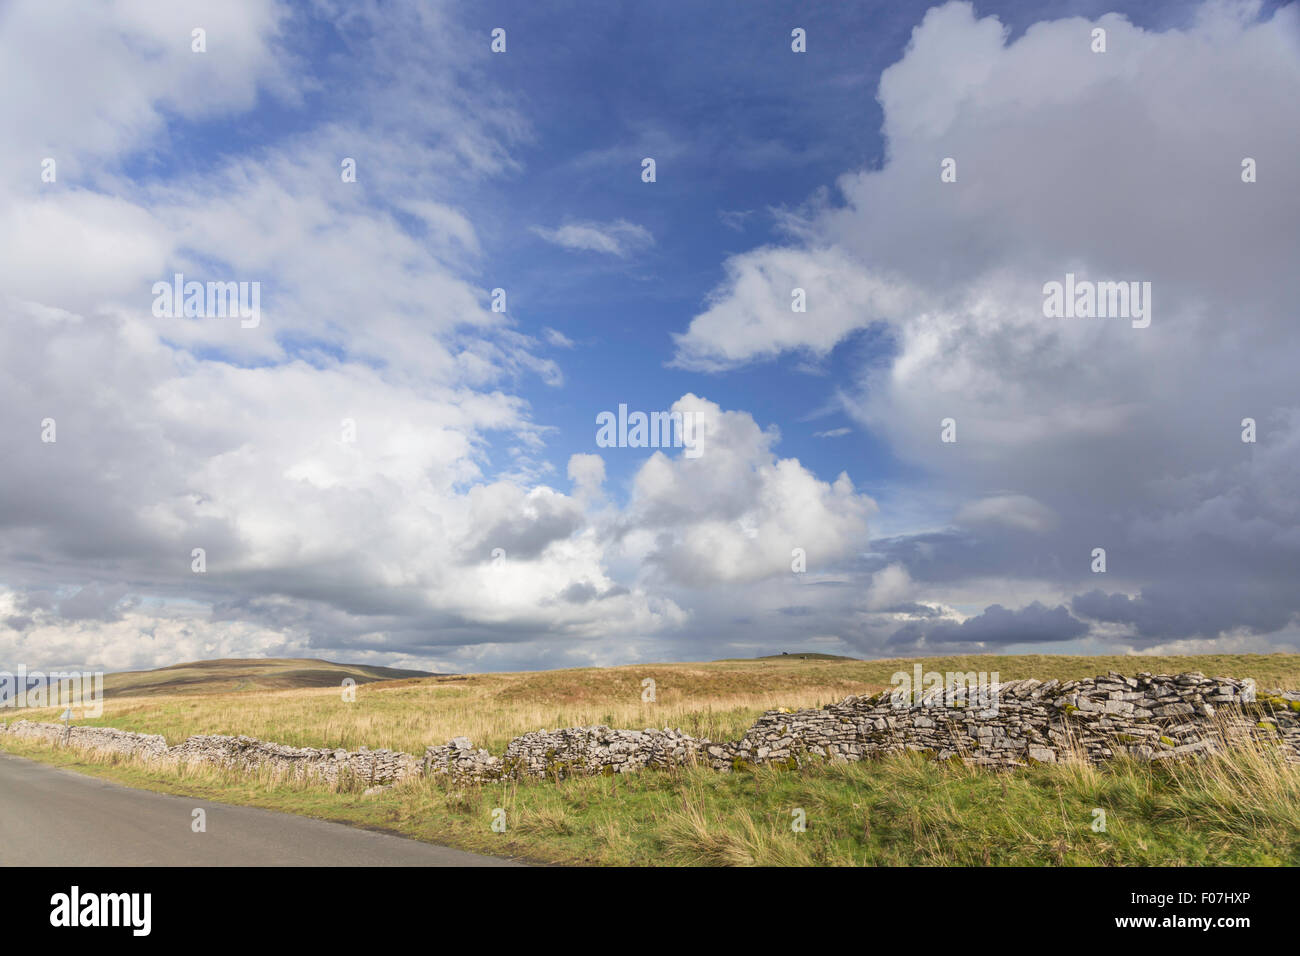 Summertime over the fells on a upland country road, Yorkshire Dales National Park, England, UK - Stock Image